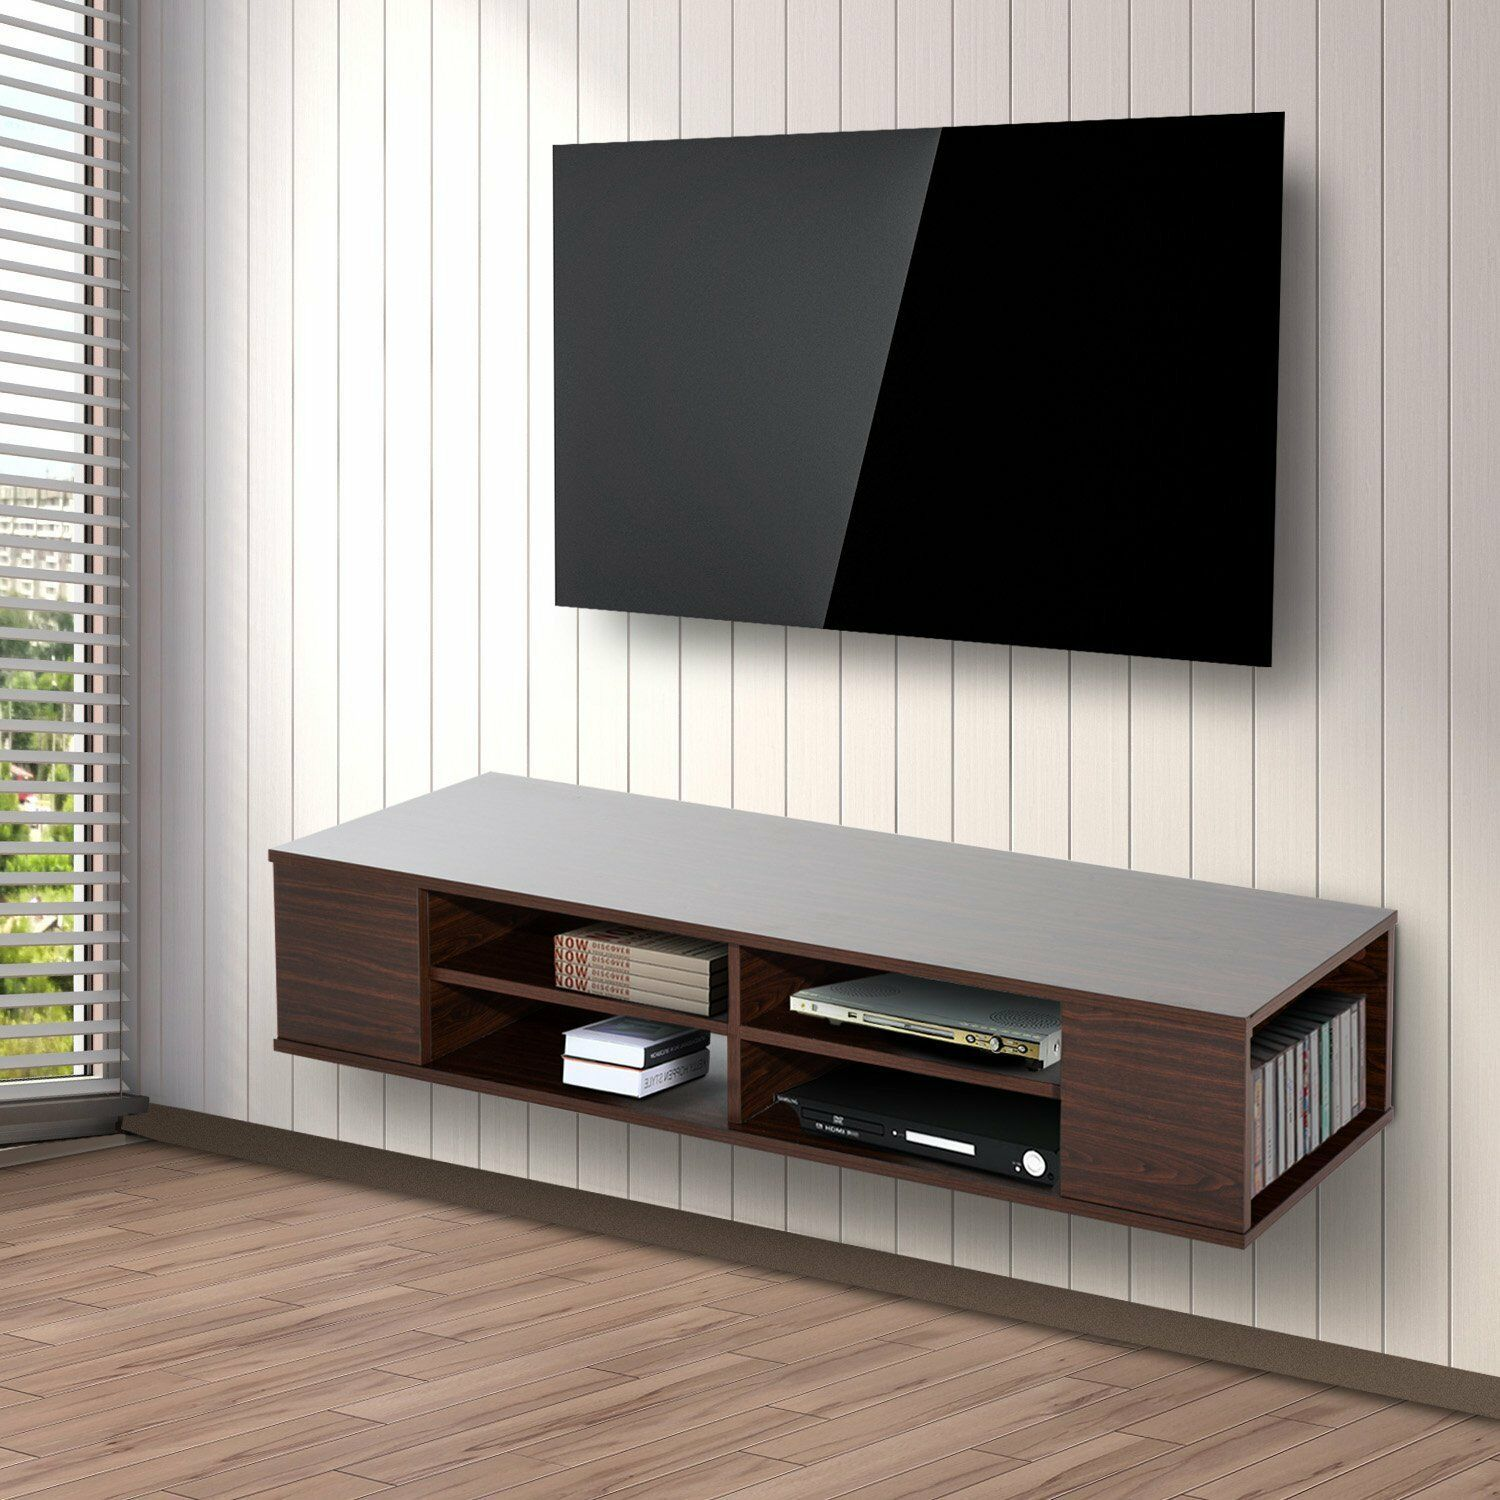 homcom floating tv stand cabinet wall mounted entertainment center console picclick. Black Bedroom Furniture Sets. Home Design Ideas